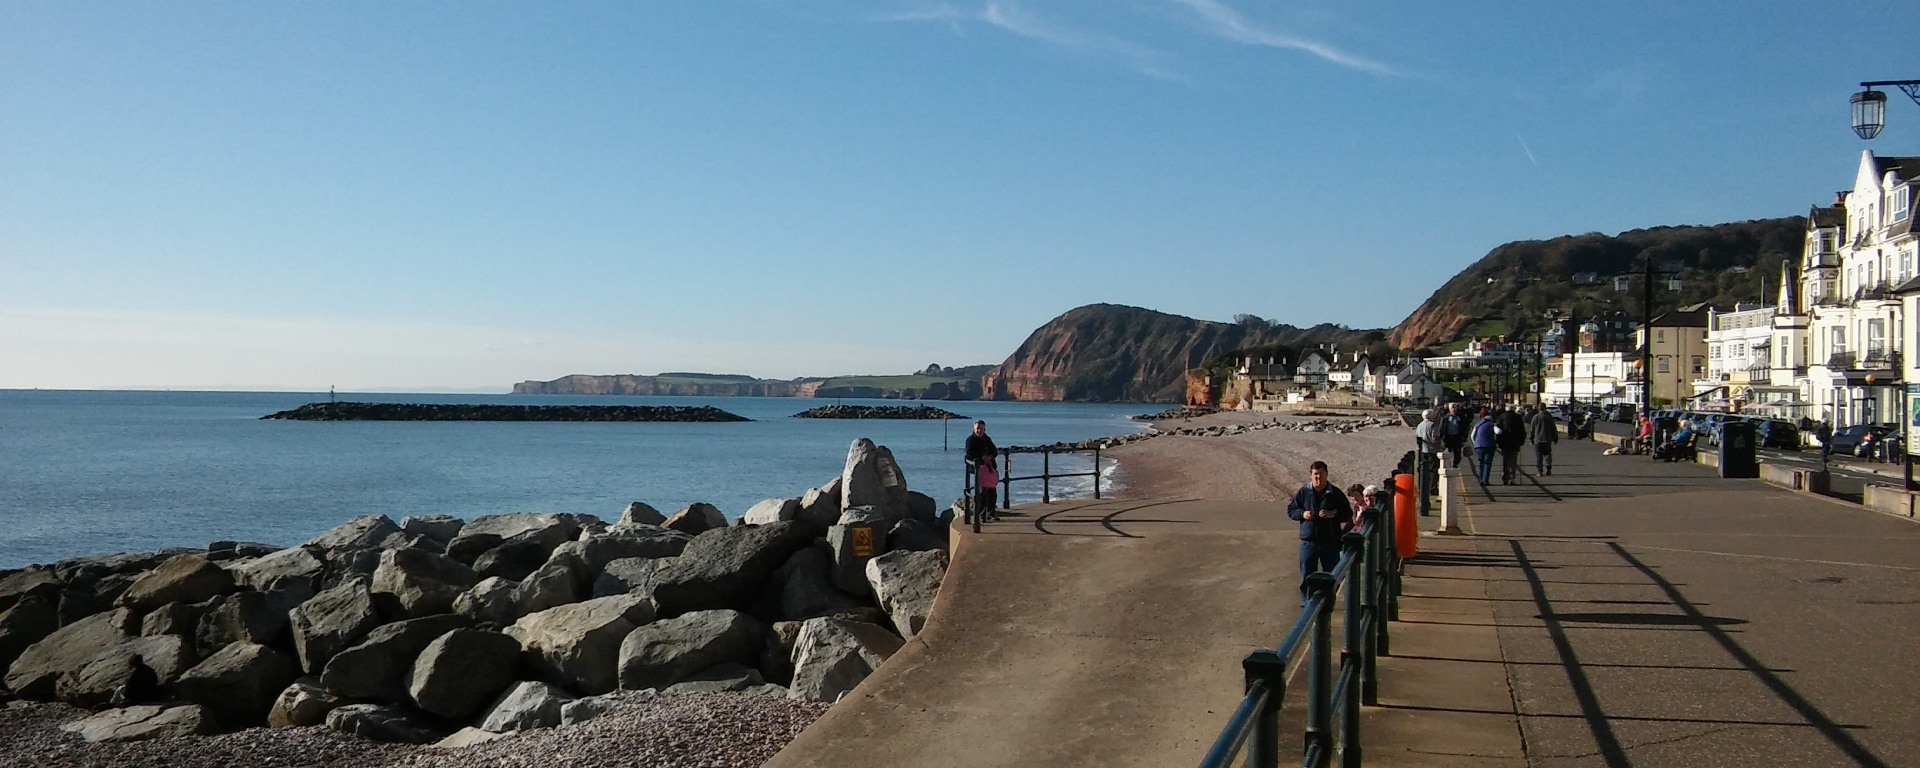 indonesian-summer-sidmouth